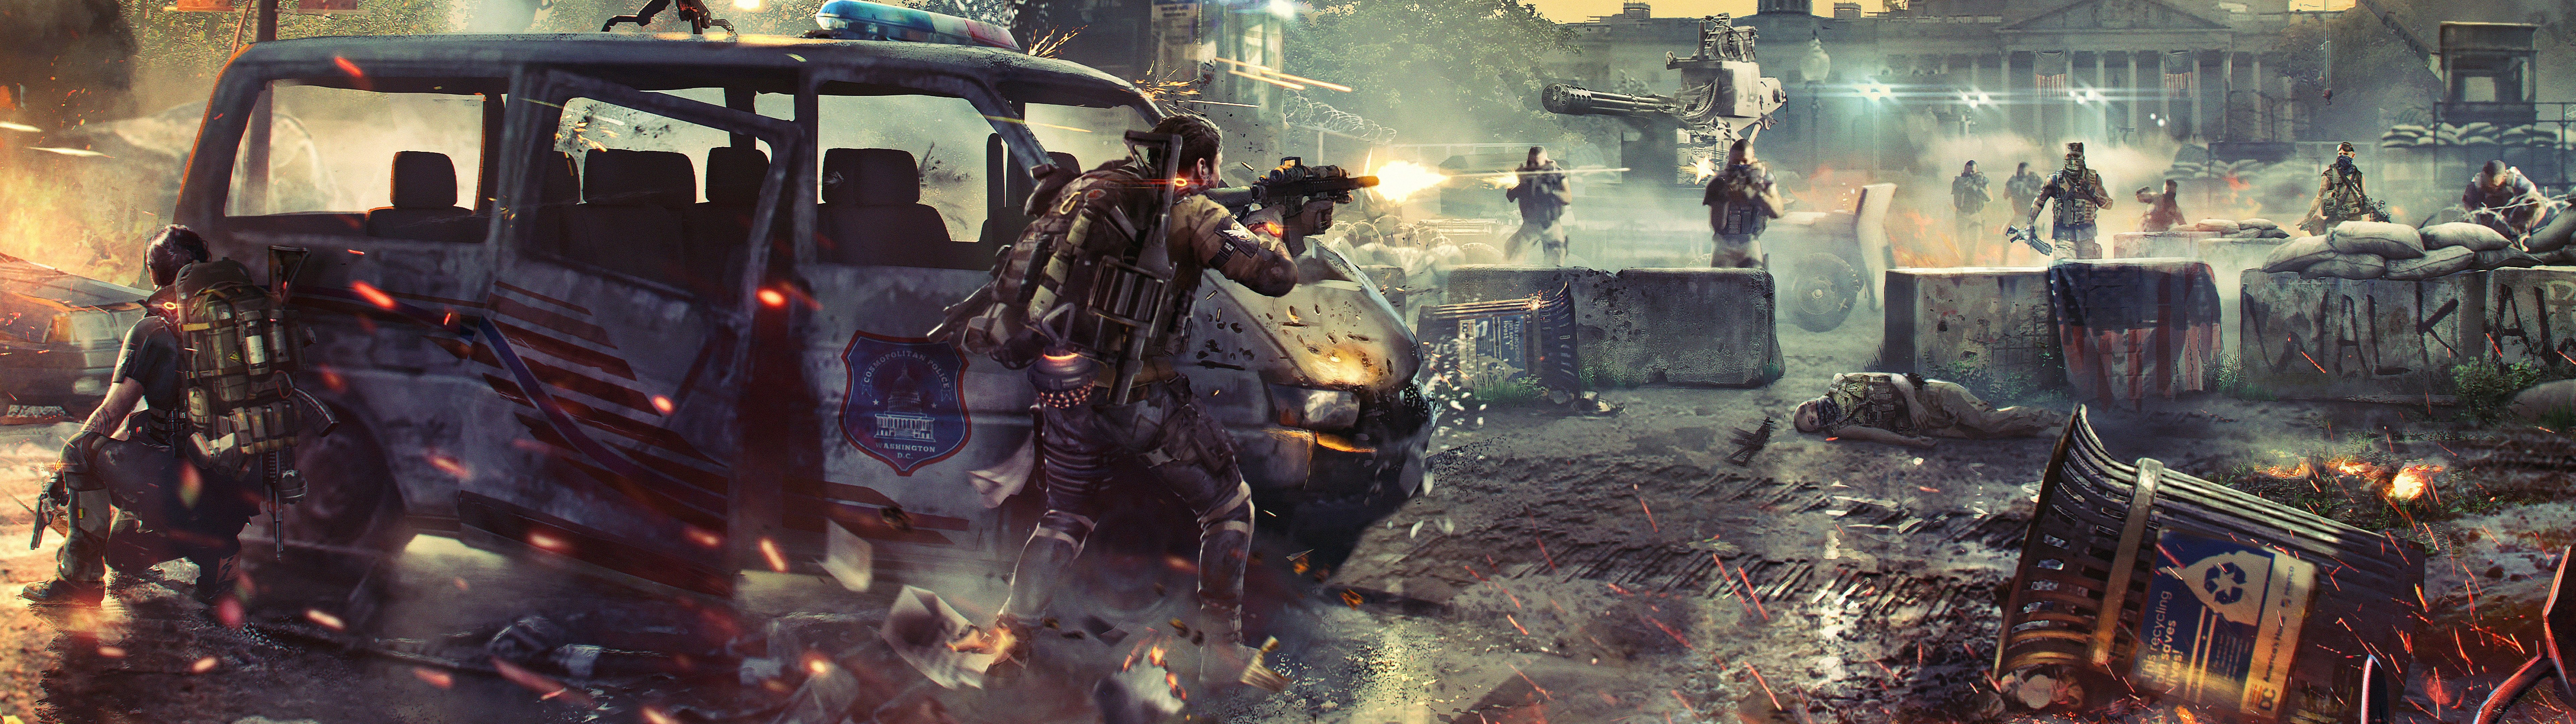 The Division 2 4k Wallpaper Posted By Ethan Tremblay